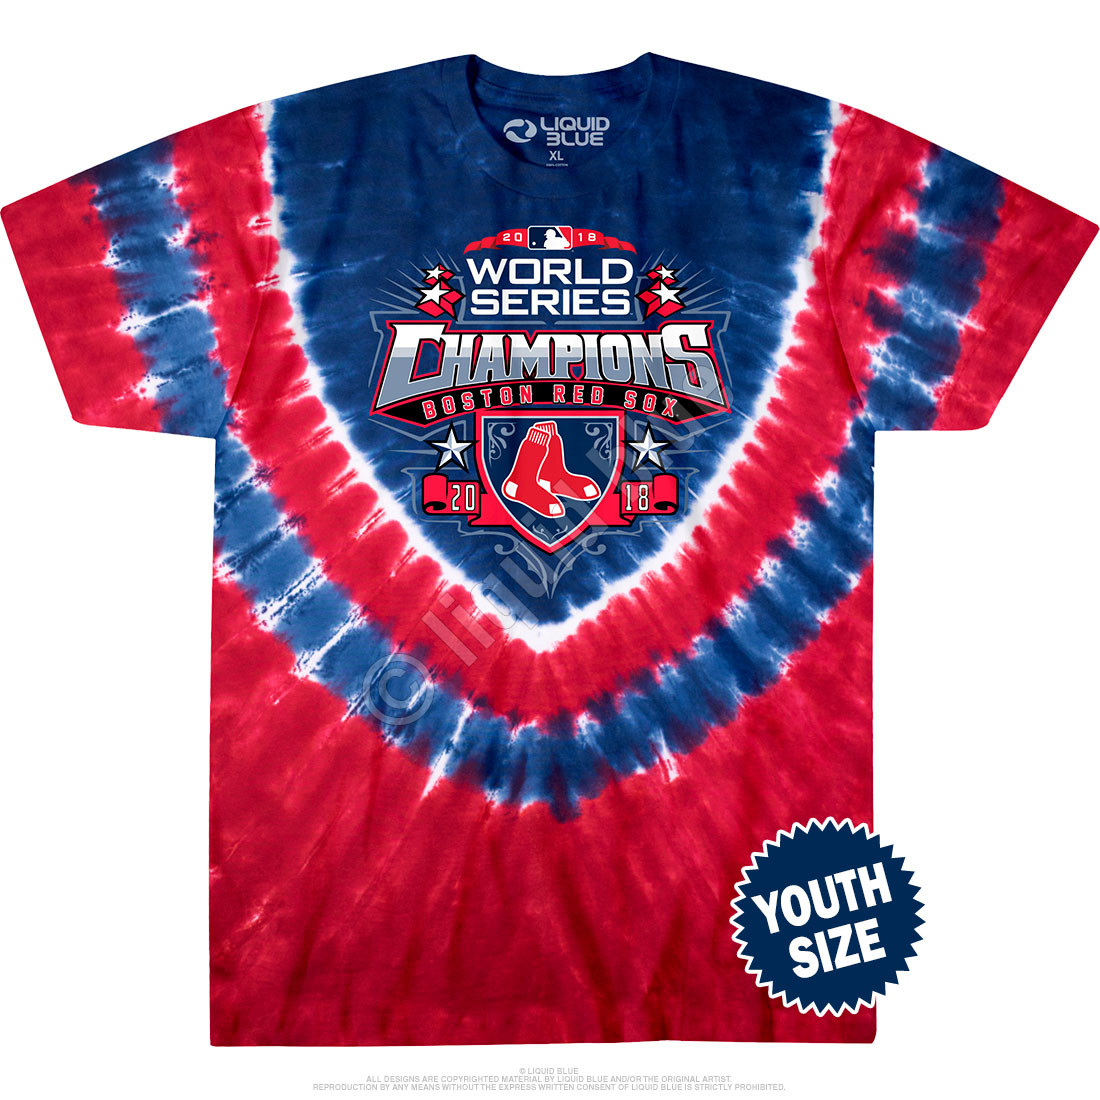 cc2874ad8339 Boston Red Sox 2018 World Series Champions Youth Tie-Dye T-Shirt